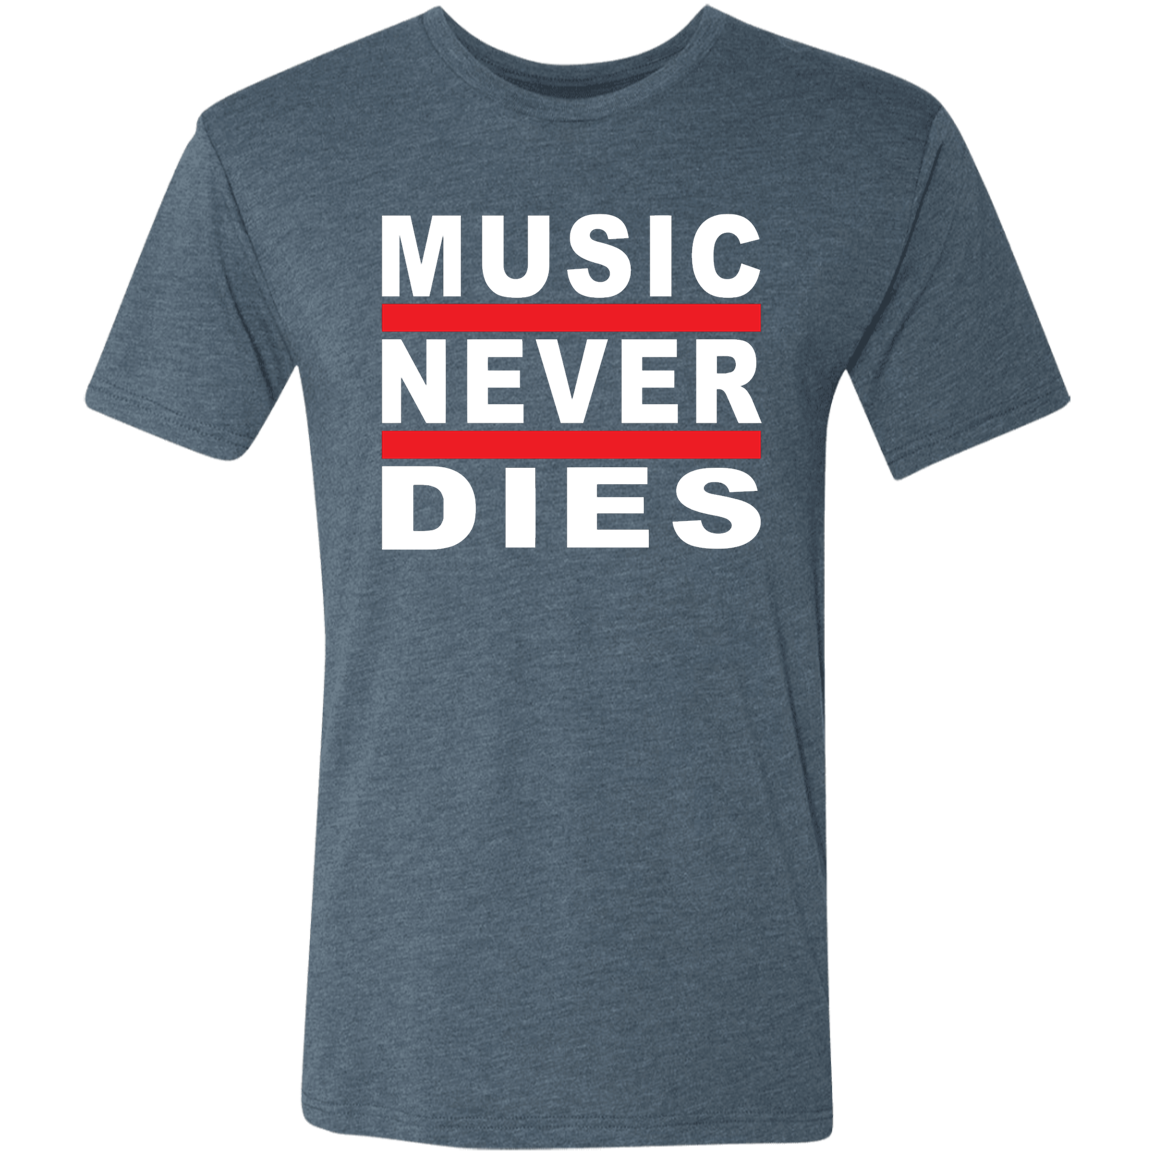 Music Never Dies - Men's Triblend T-Shirt